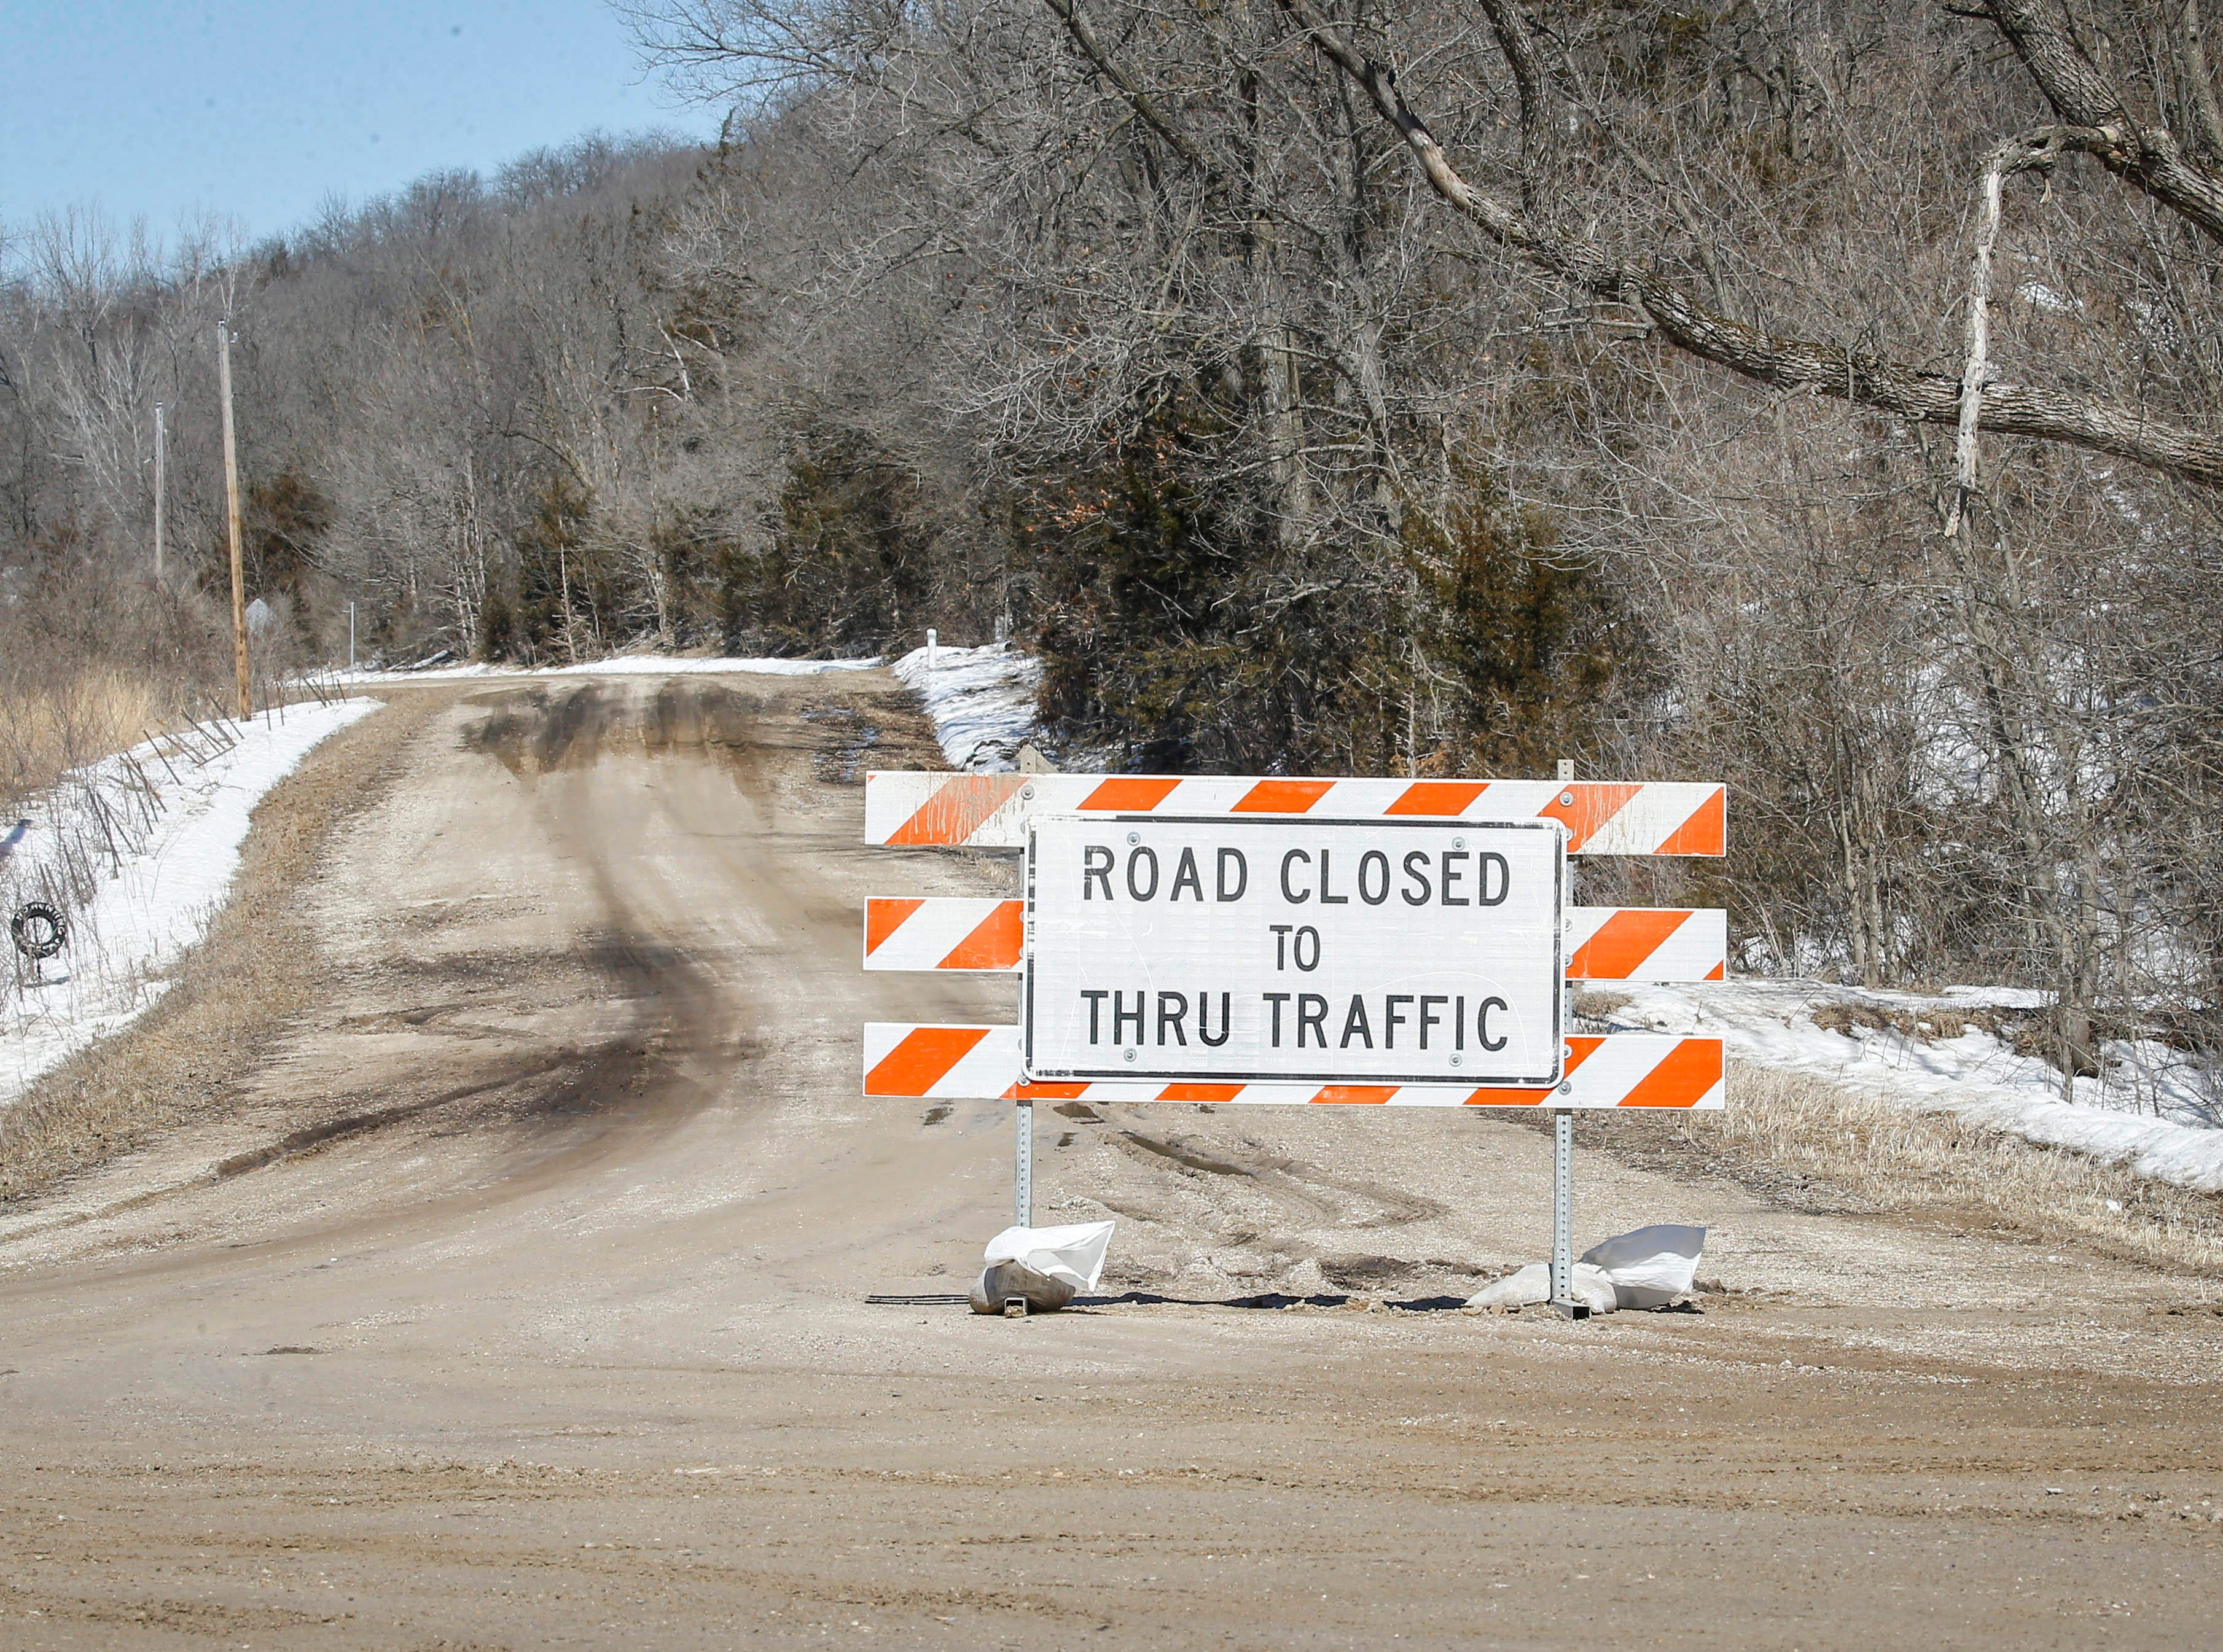 Water from melting snow has caused counties in Iowa to close some secondary roads, like this road near Stratford in Hamilton County, on Friday, March 15, 2019.